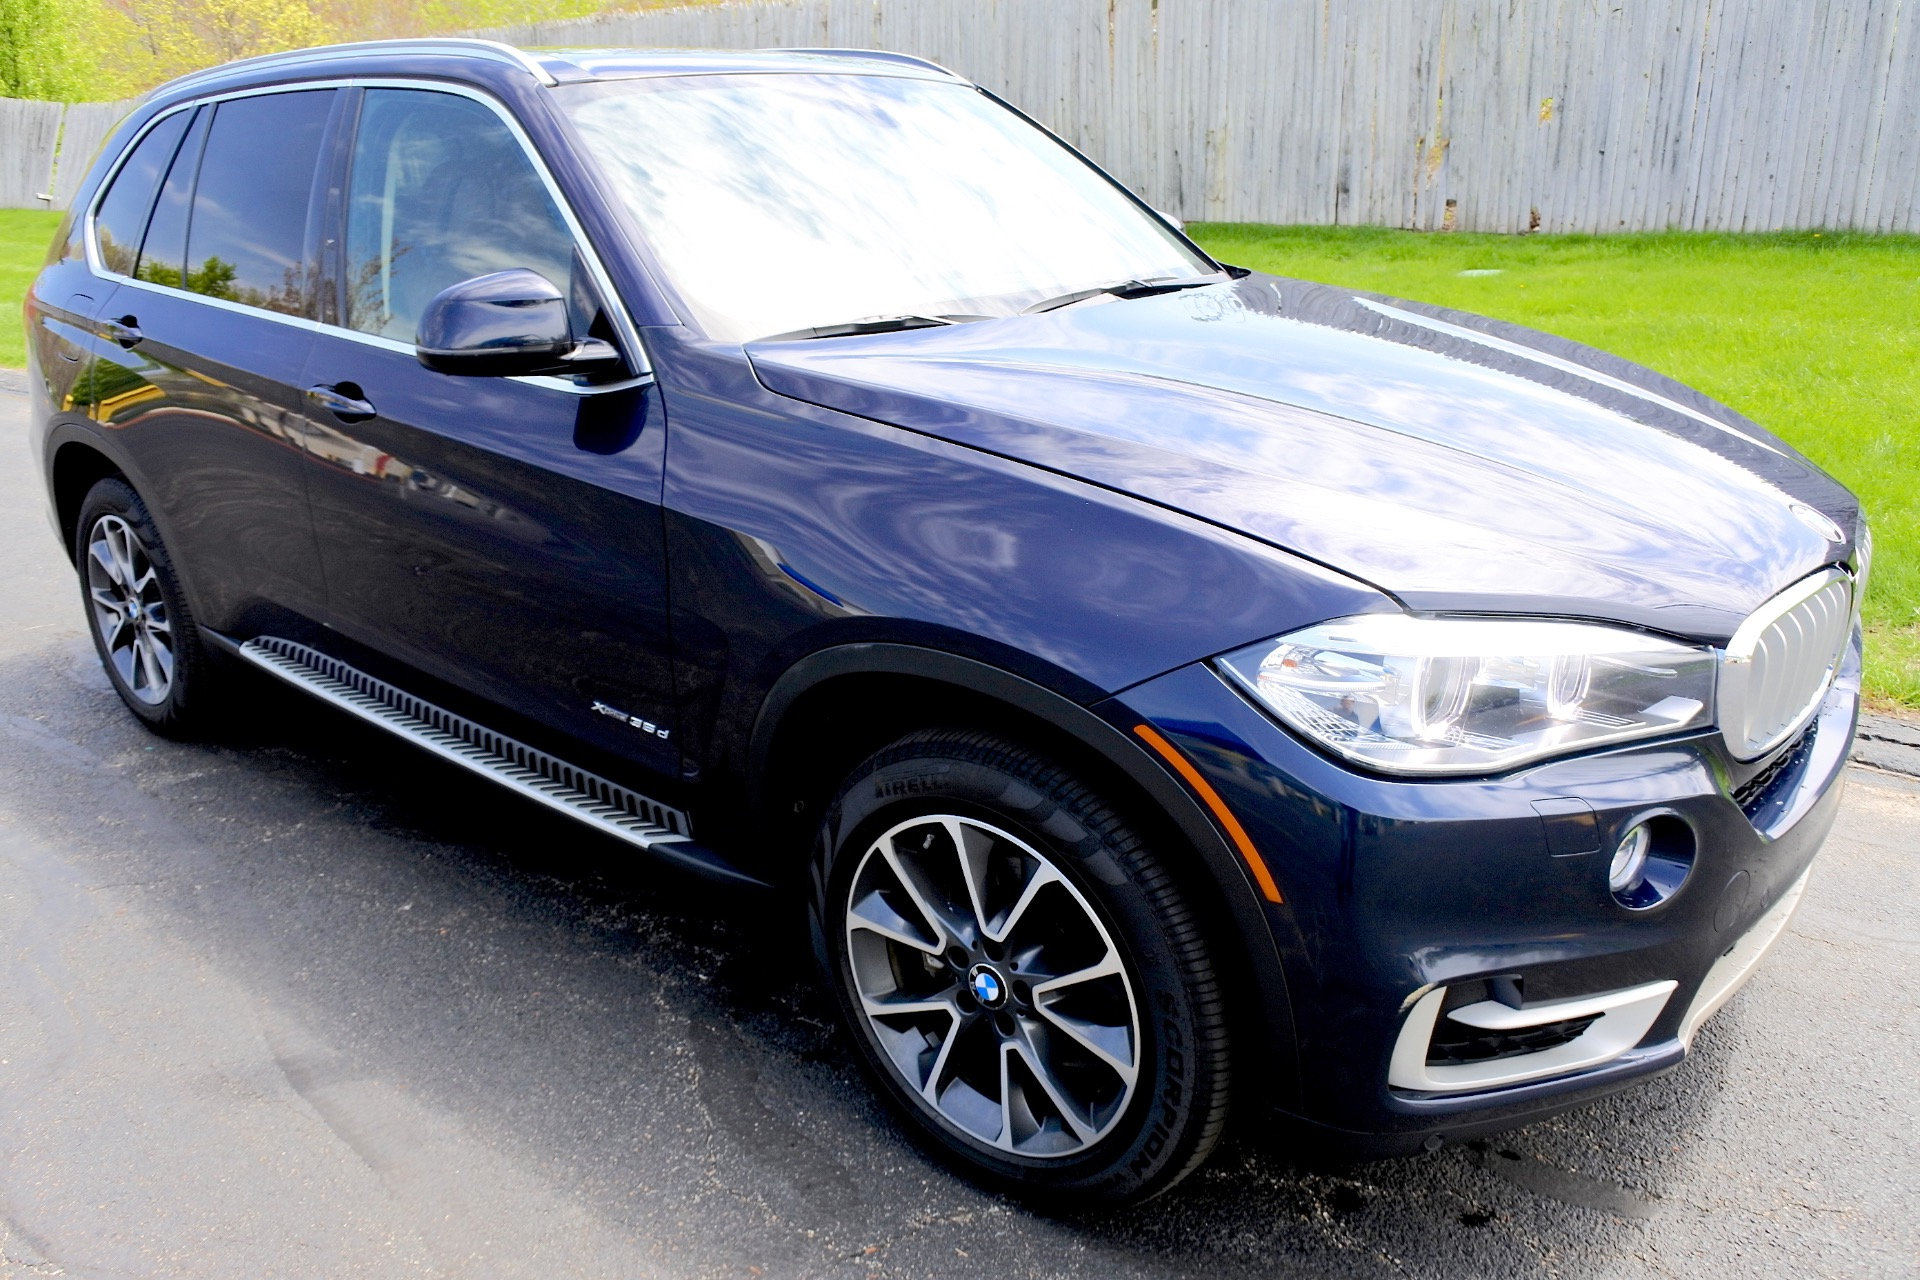 Used 2015 BMW X5 AWD 4dr xDrive35d Used 2015 BMW X5 AWD 4dr xDrive35d for sale  at Metro West Motorcars LLC in Shrewsbury MA 7